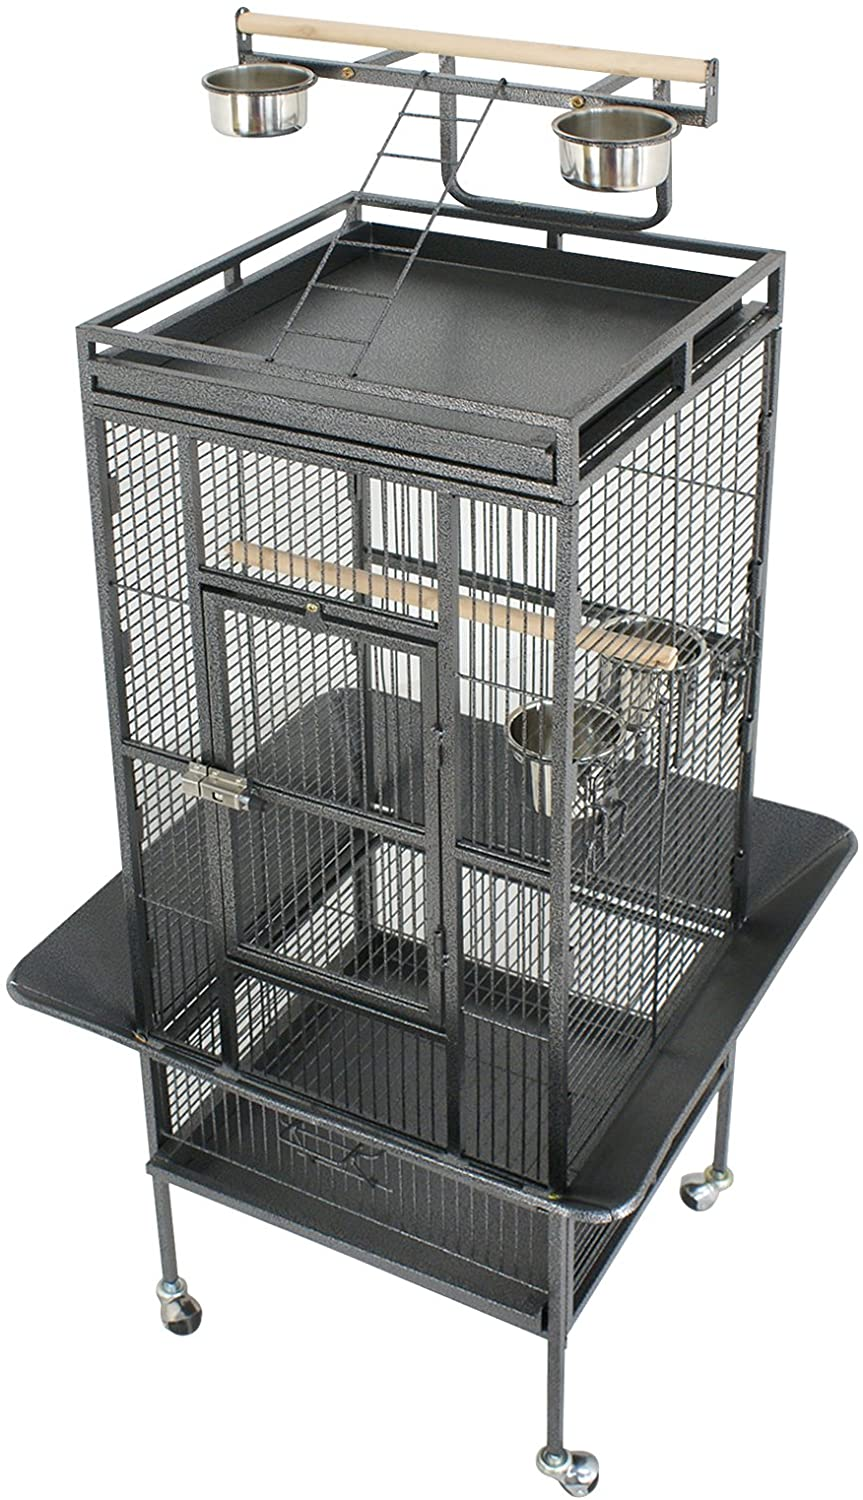 Averill YPT18 Small Bird Parrot Play top Cage for Pionus